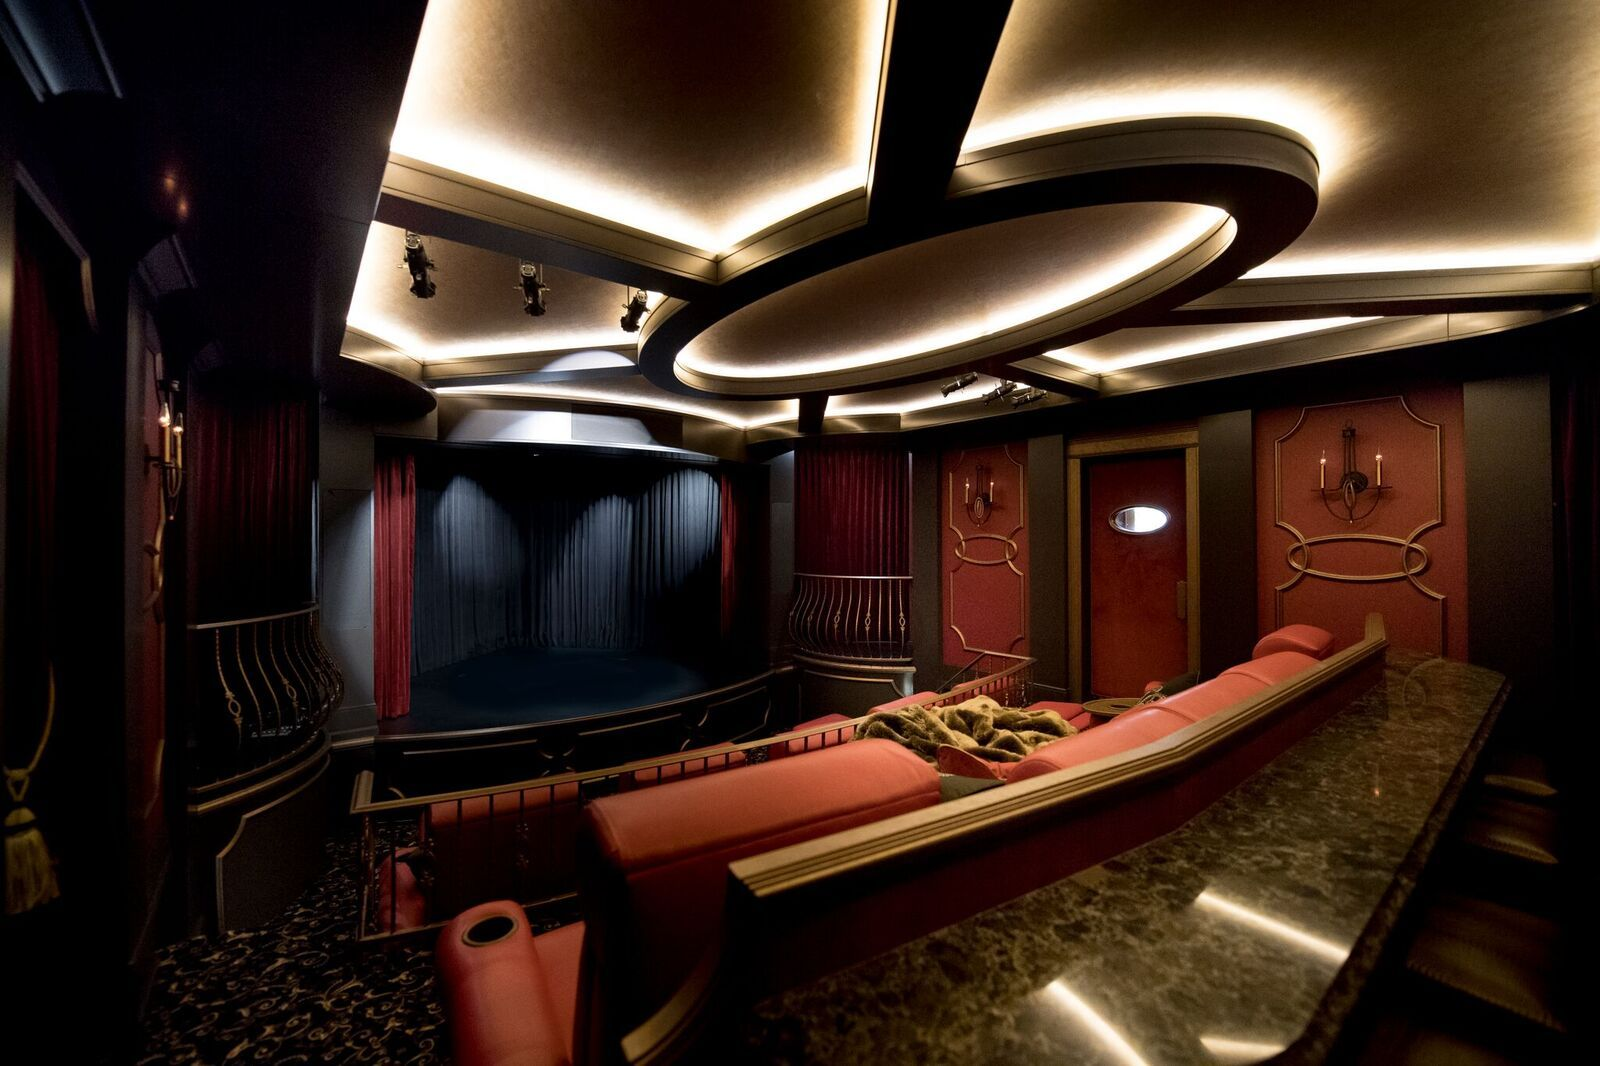 Luxury custom home movie theatre with red seats and black curtain